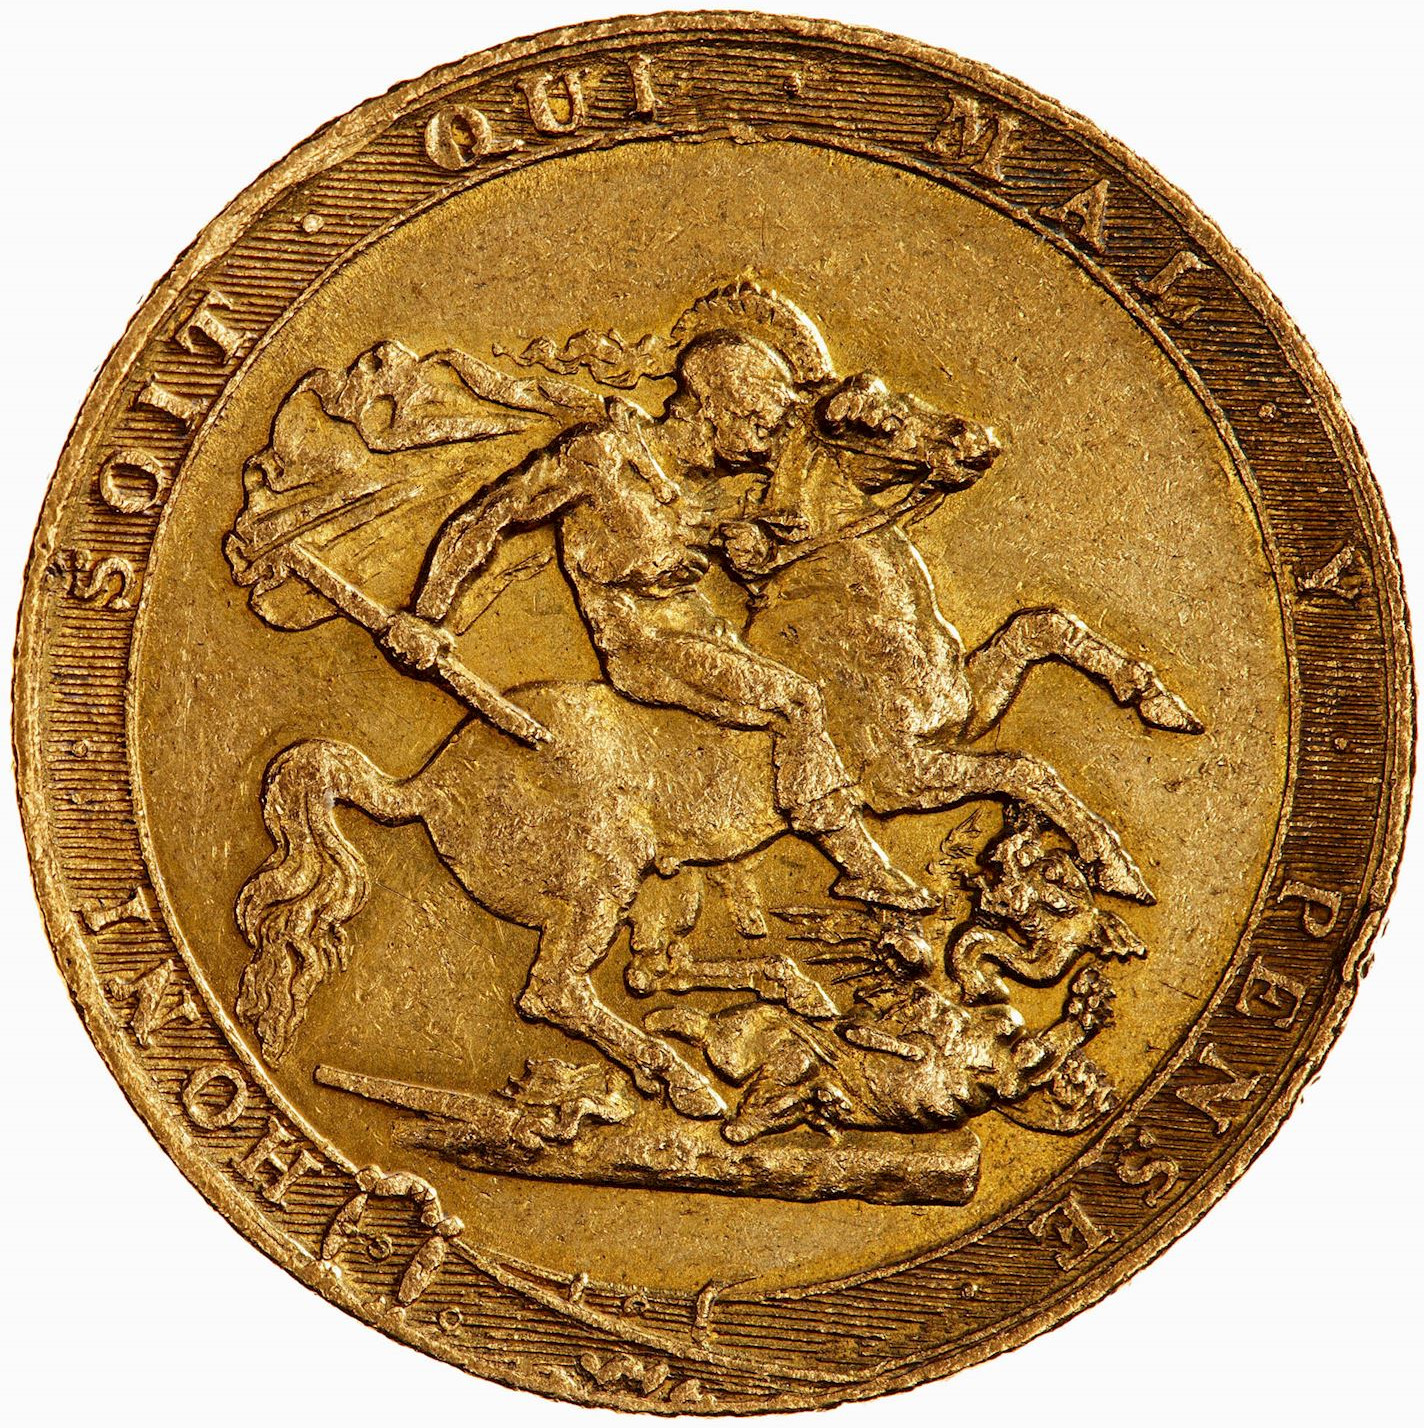 Sovereign (pre-Victorian): Photo Coin - Sovereign, George III, Great Britain, 1820